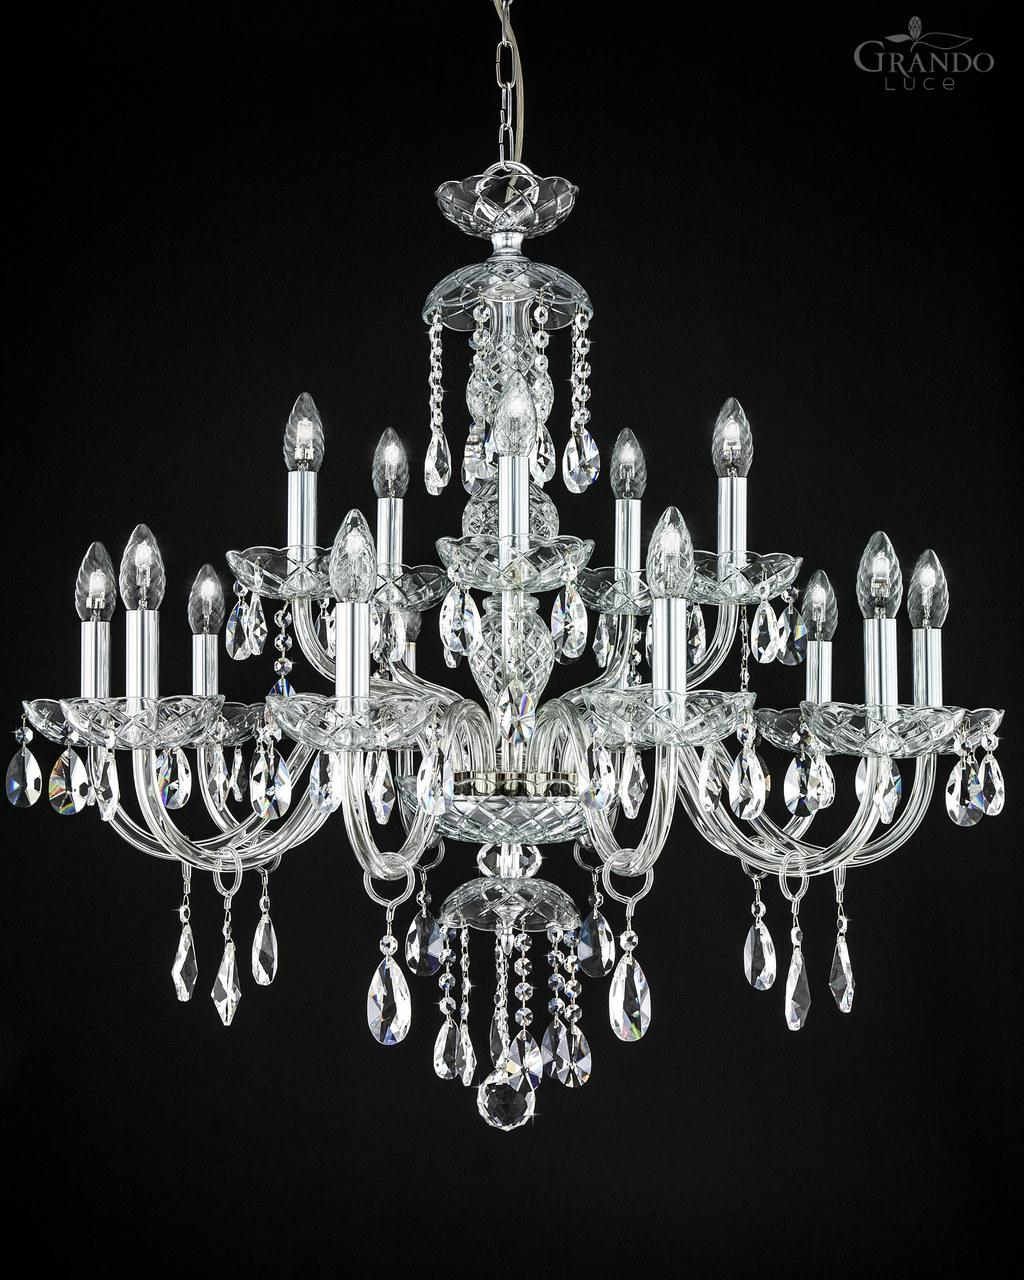 104ch 105 chrome crystal chandelier grandoluce transparent handmade classic crystal chandelier with chrome metal finish and delicate crystal trimmings arubaitofo Choice Image